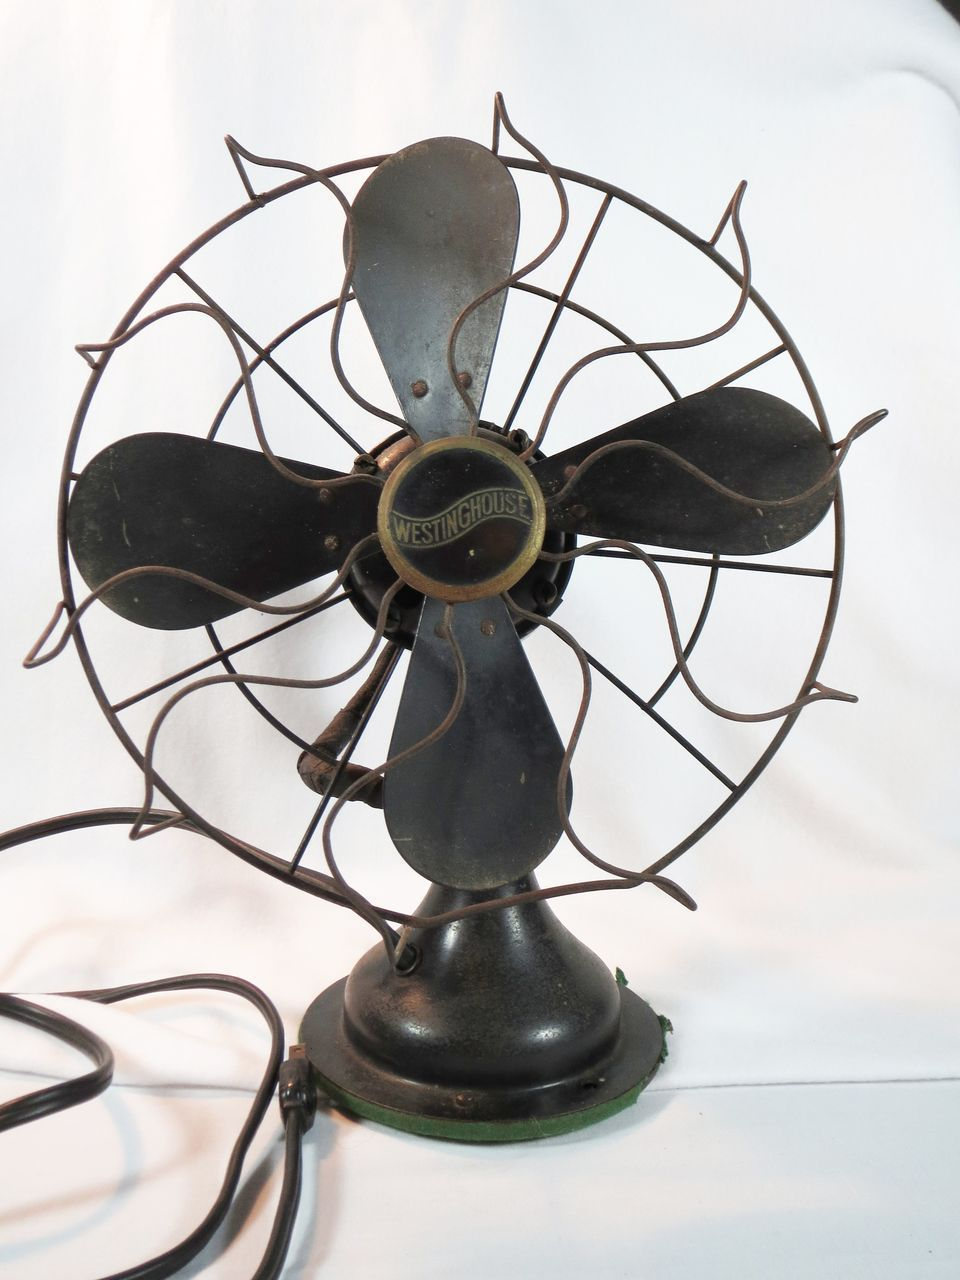 Vintage Style Oscillating Fan Bindu Bhatia Astrology